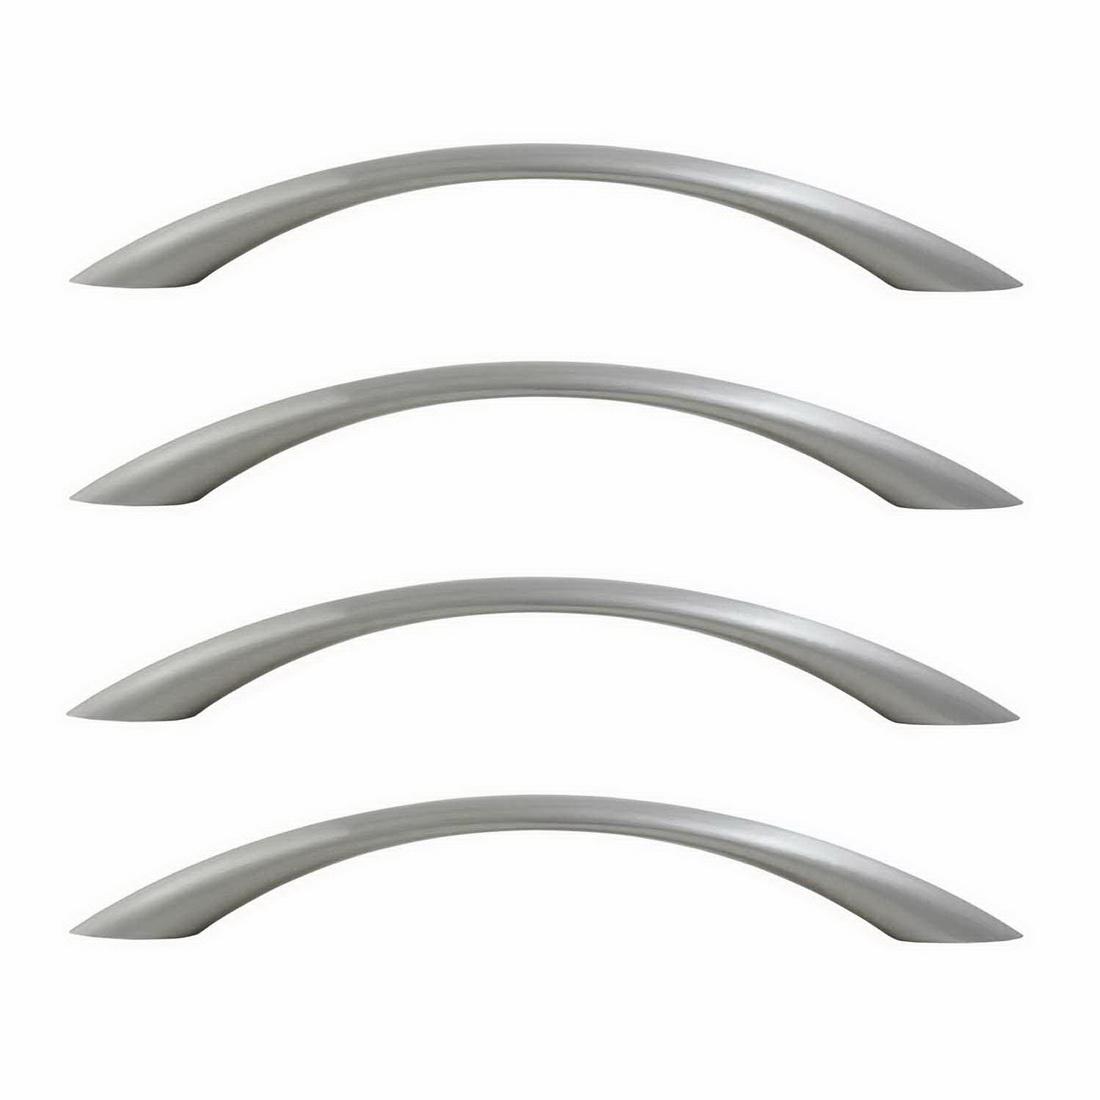 Primo Bow Cabinet Handle 128mm Brushed Nickel 4 pack 6358-4-BN